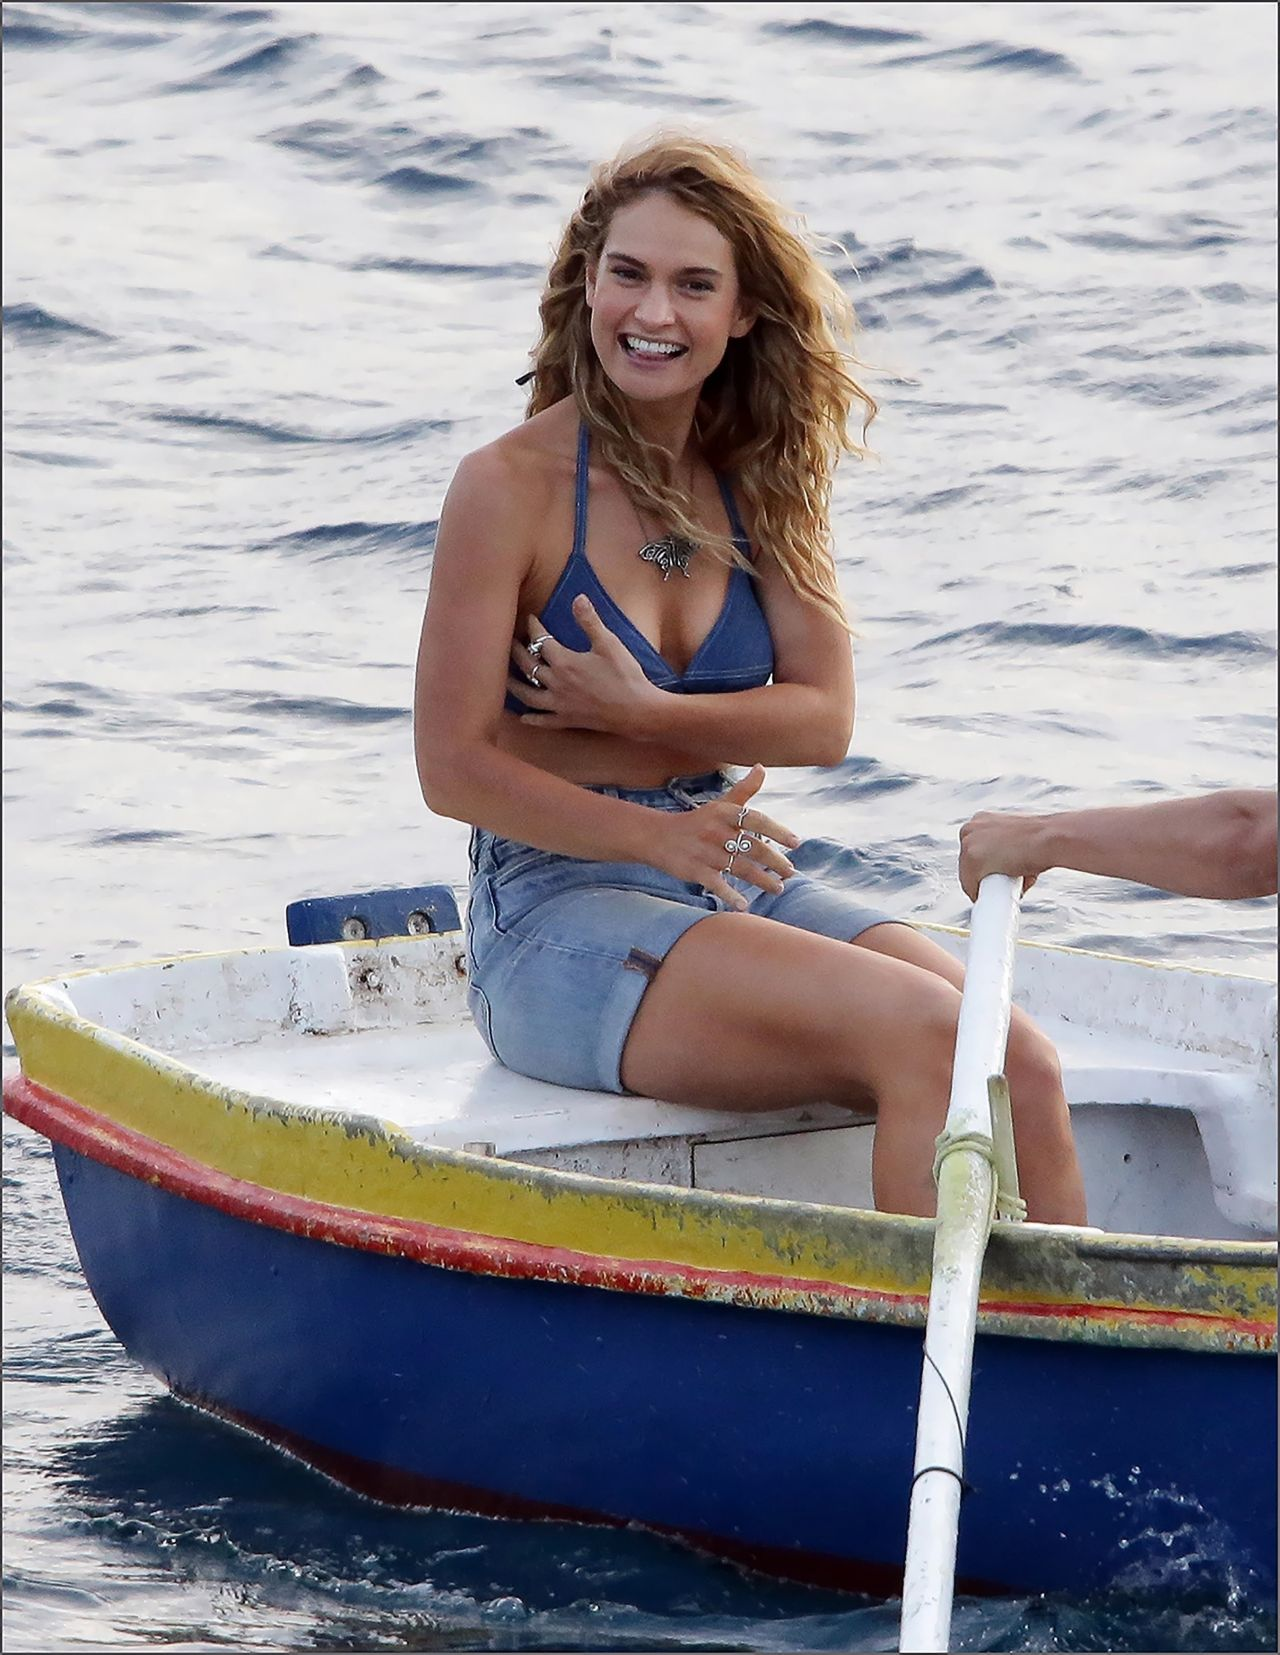 "Lily James in a Blue Bikini Top and Denim Shorts - ""Mama Mia!"" Sequel Set at Vis Island in Croatia 09/12/2017"